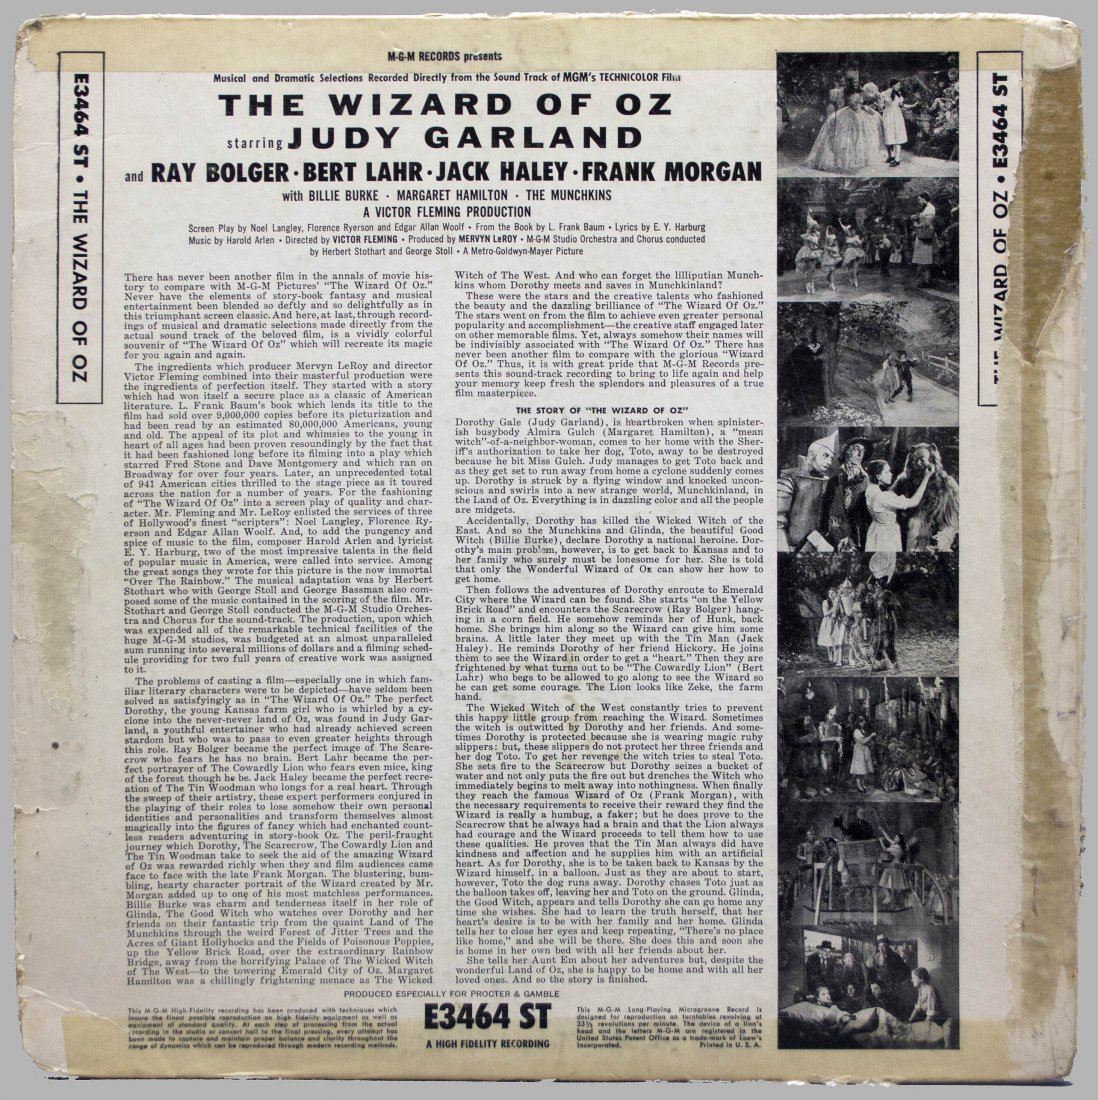 Signed by 6 actors: THE WIZARD OF OZ record album - 8